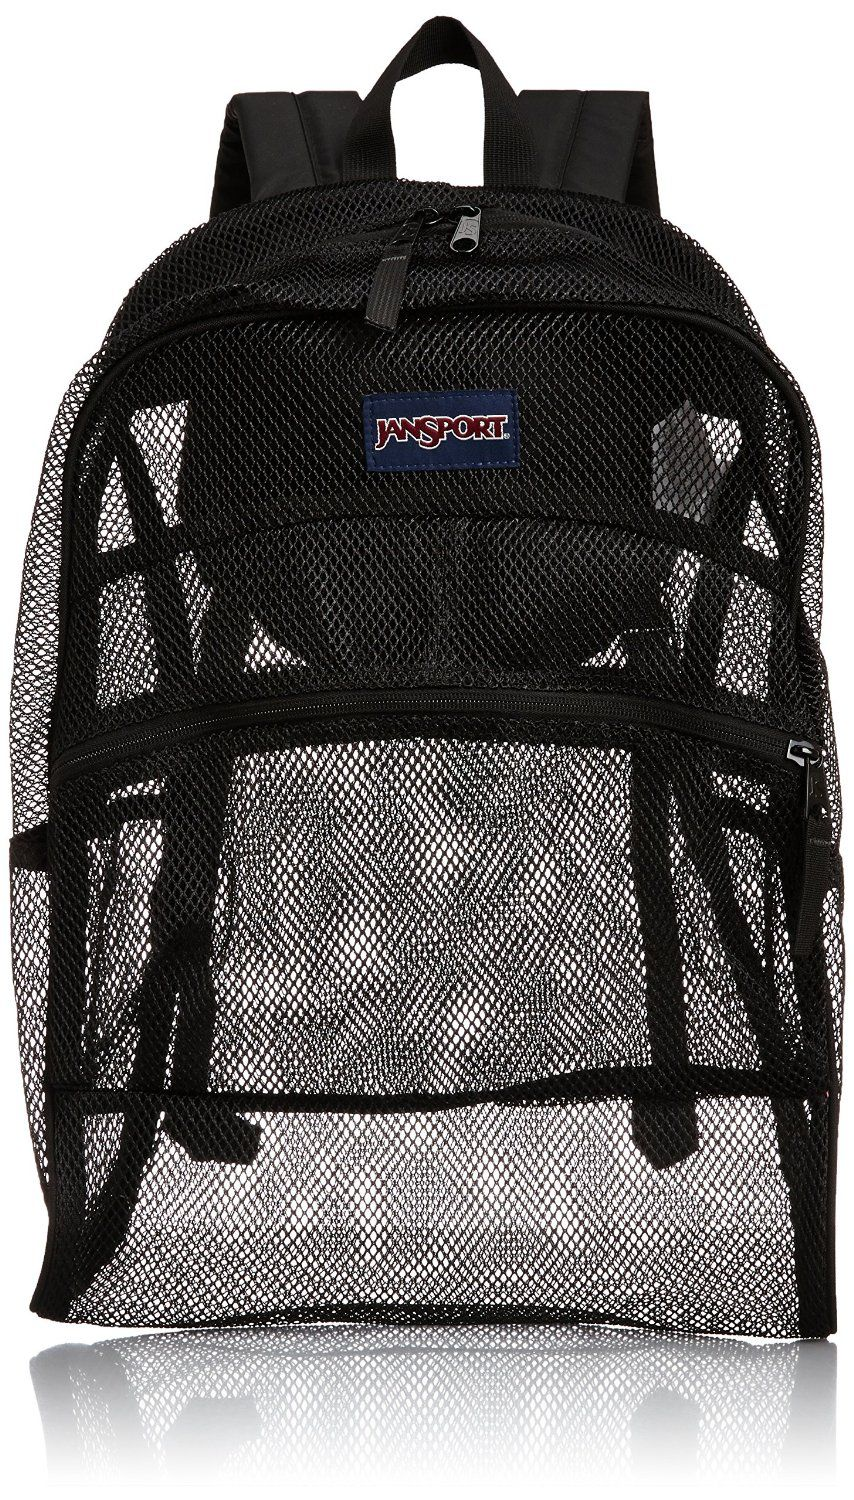 Last Year My Daughters School Required See Through Backpacks And So This Is The Backpack She Now How Has I Wasnt Crazy About Mesh At First